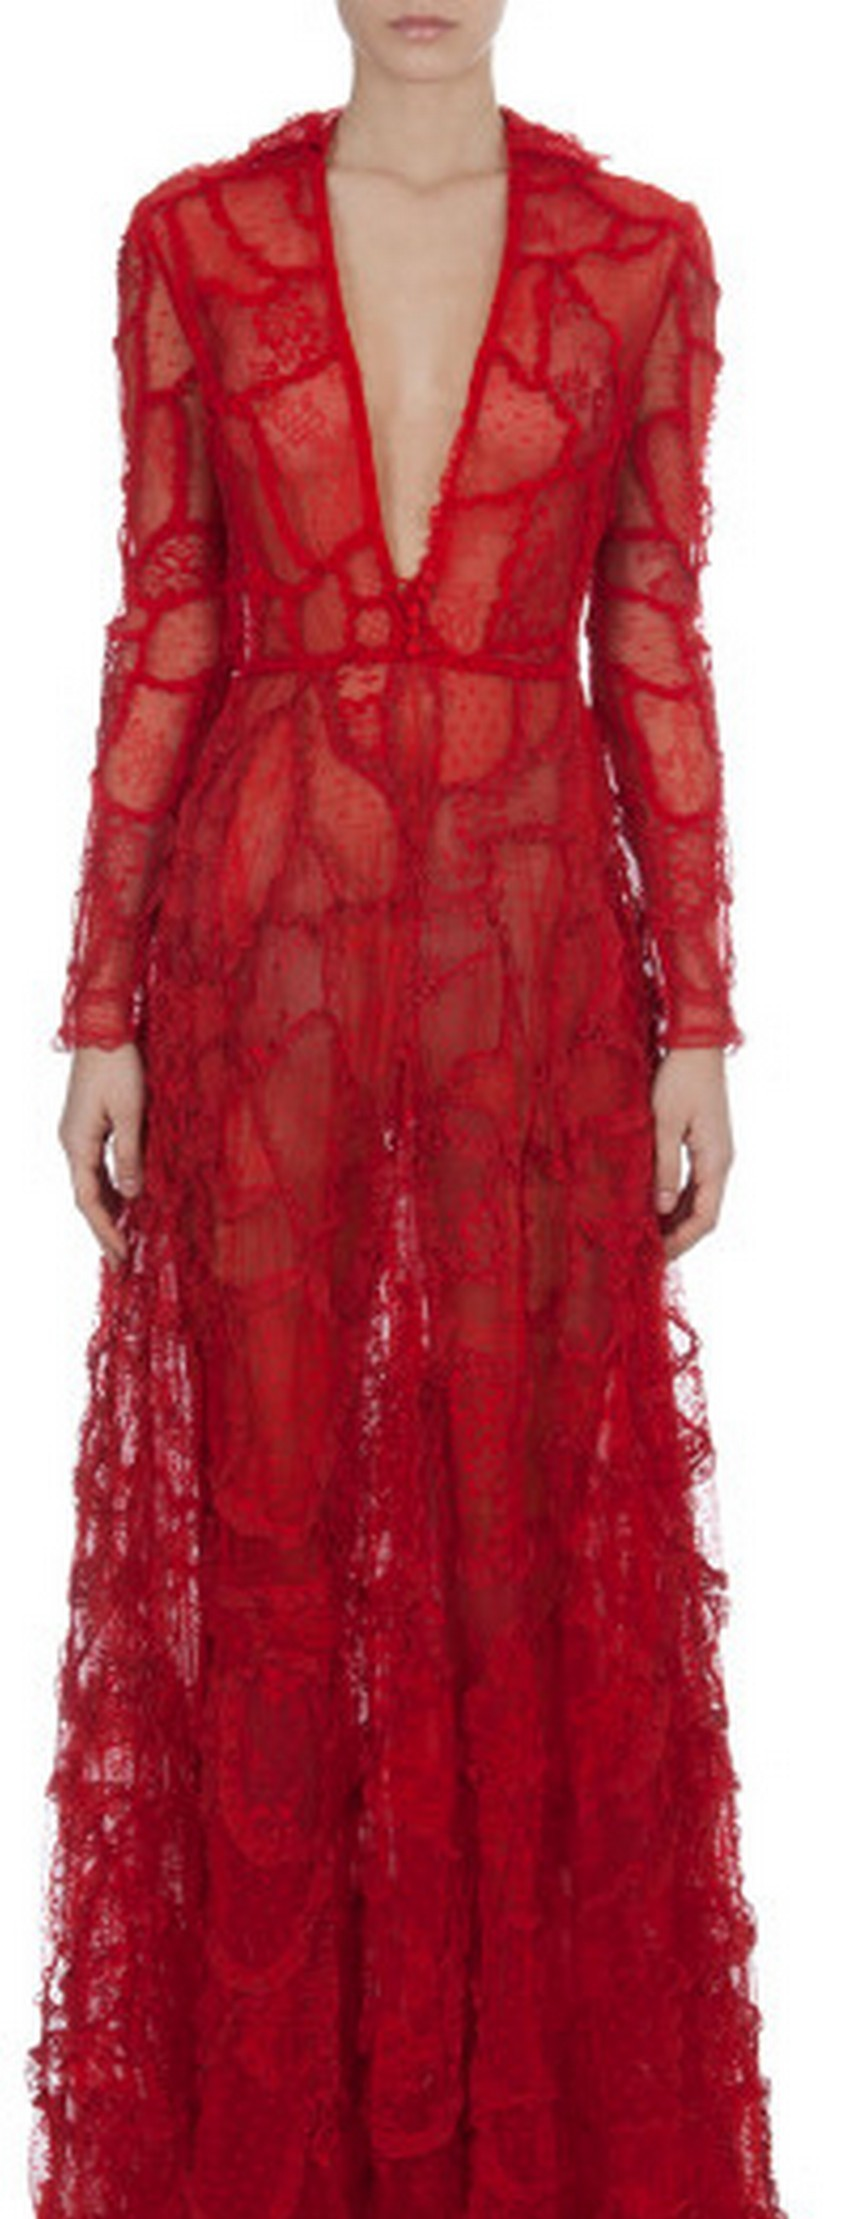 2. Long-Sleeve Deep-V Lace Patchwork Gown - Price: $24,000   Most Expensive Valentino Dresses   Image Source: http://cdnb.lystit.com/